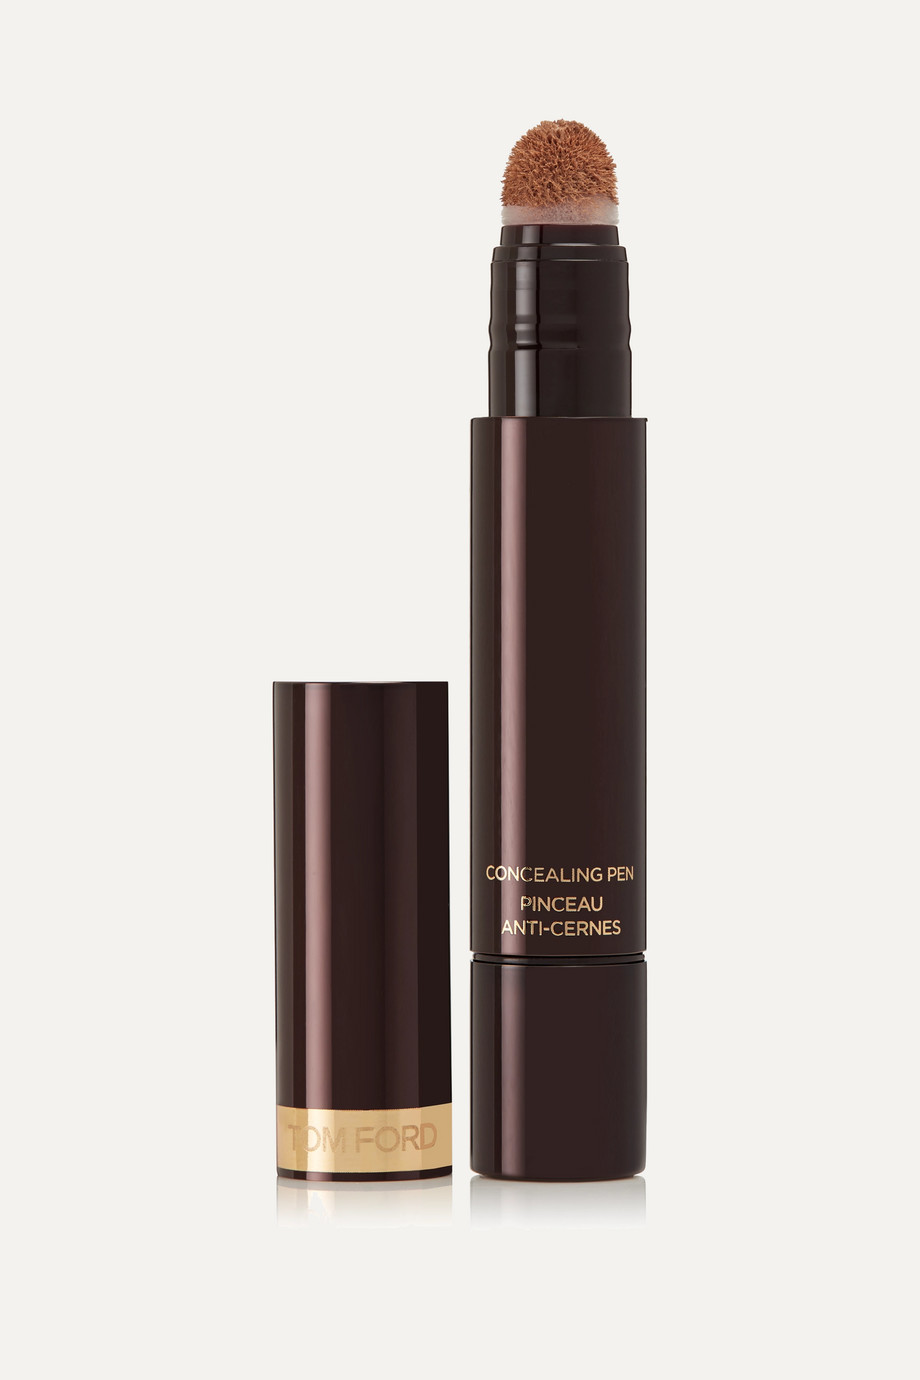 TOM FORD BEAUTY Concealing Pen - Chestnut 10.0